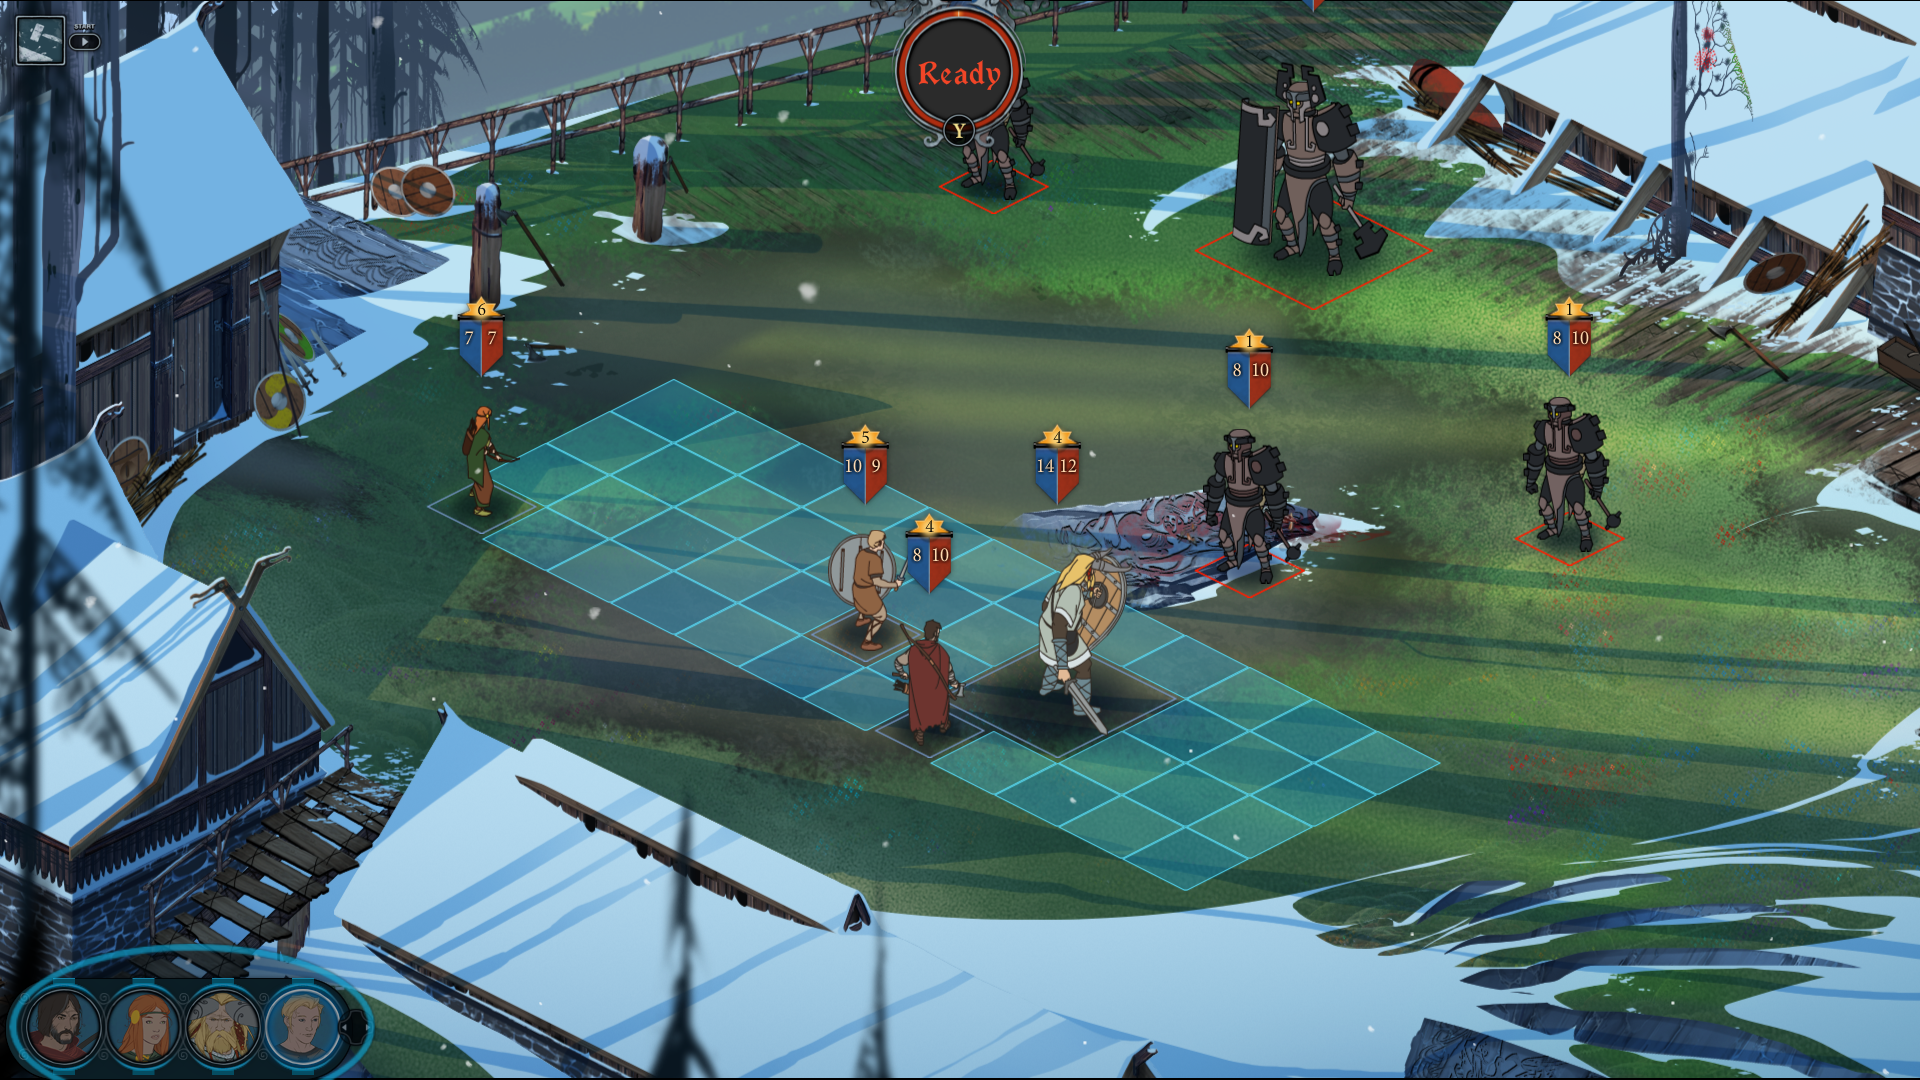 banner_saga_mouse_regions.png